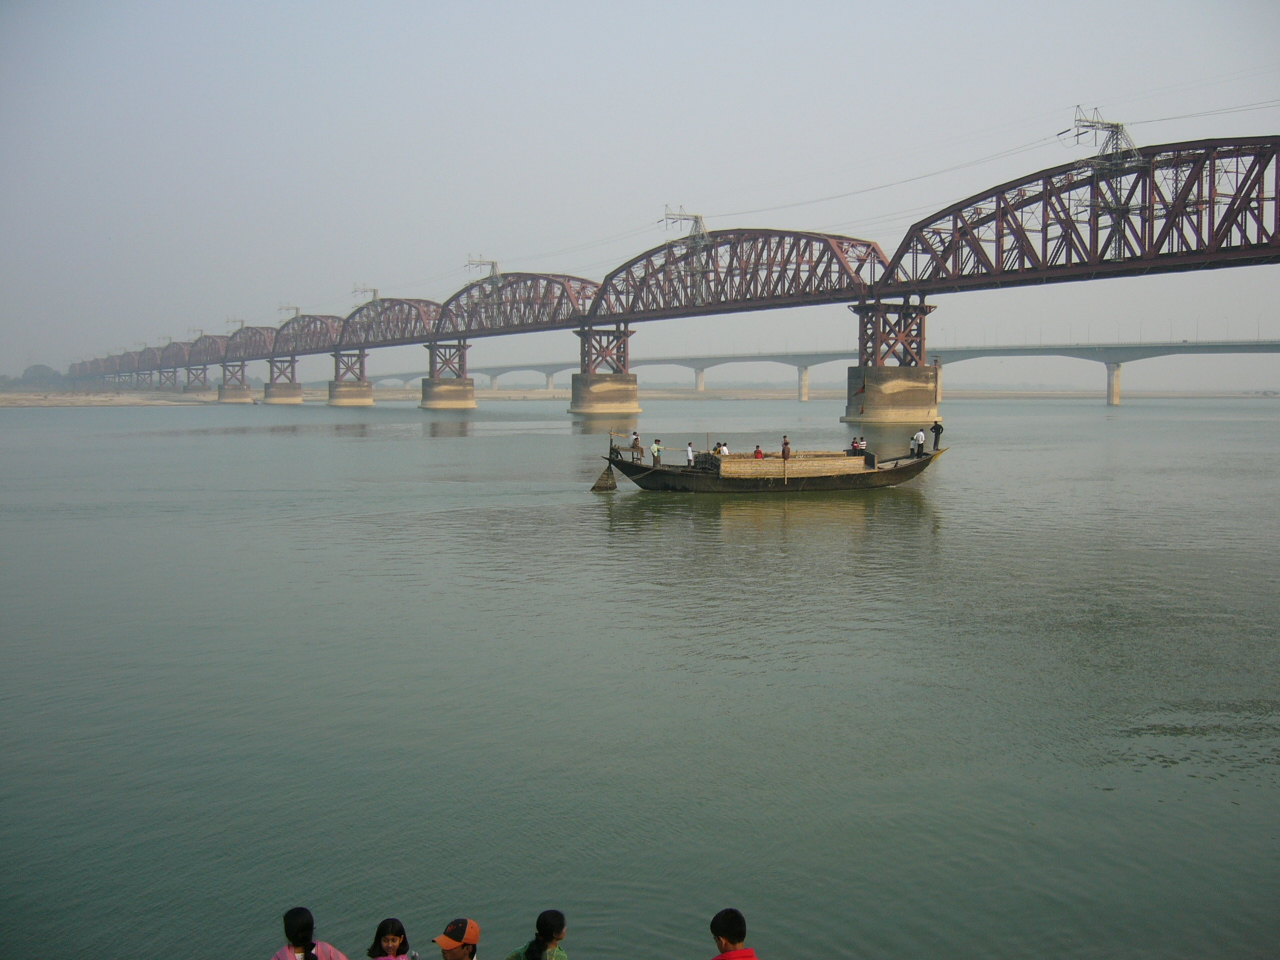 Hardinge Bridge, Bangladesh, crosses the Ganges-Padma River. It is one of the key sites for measuring streamflow and discharge on the lower Ganges.